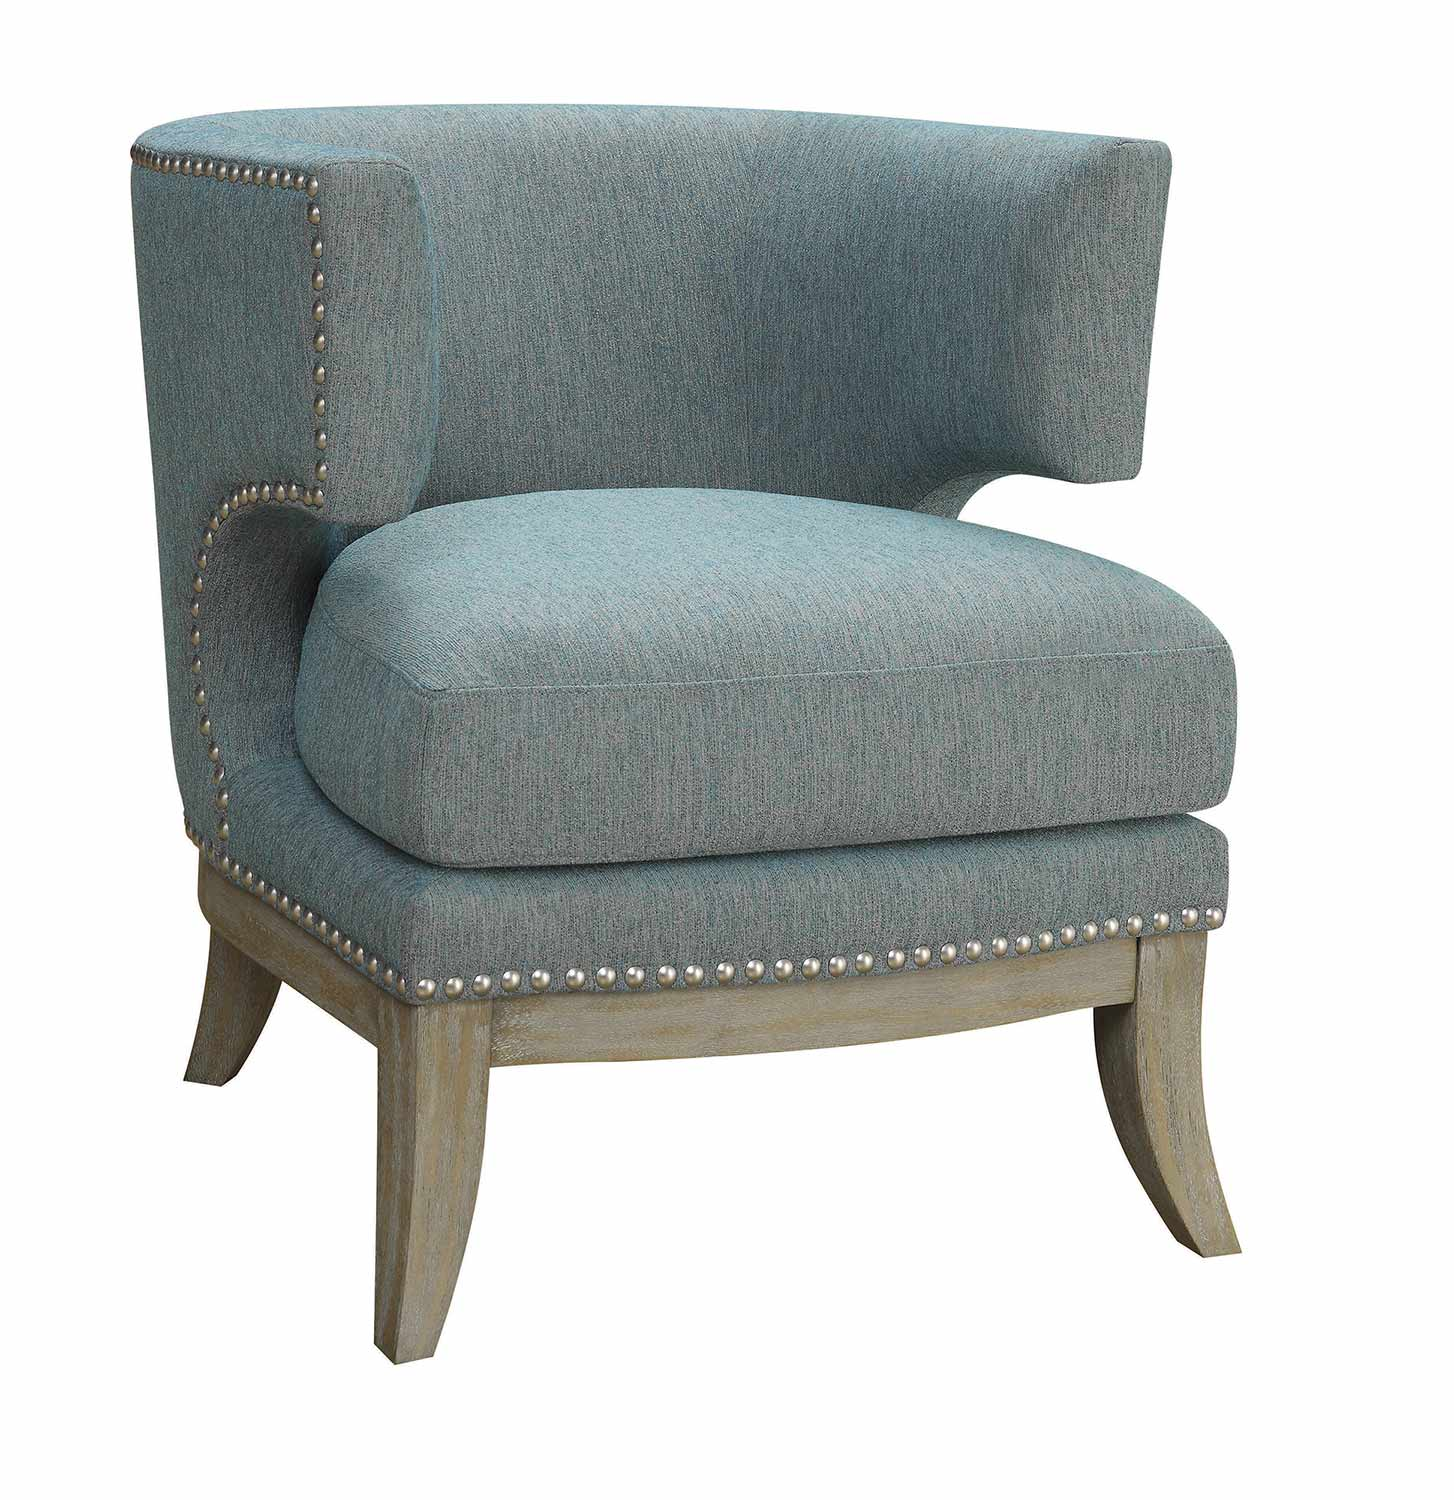 Coaster 902558 Accent Chair - Blue